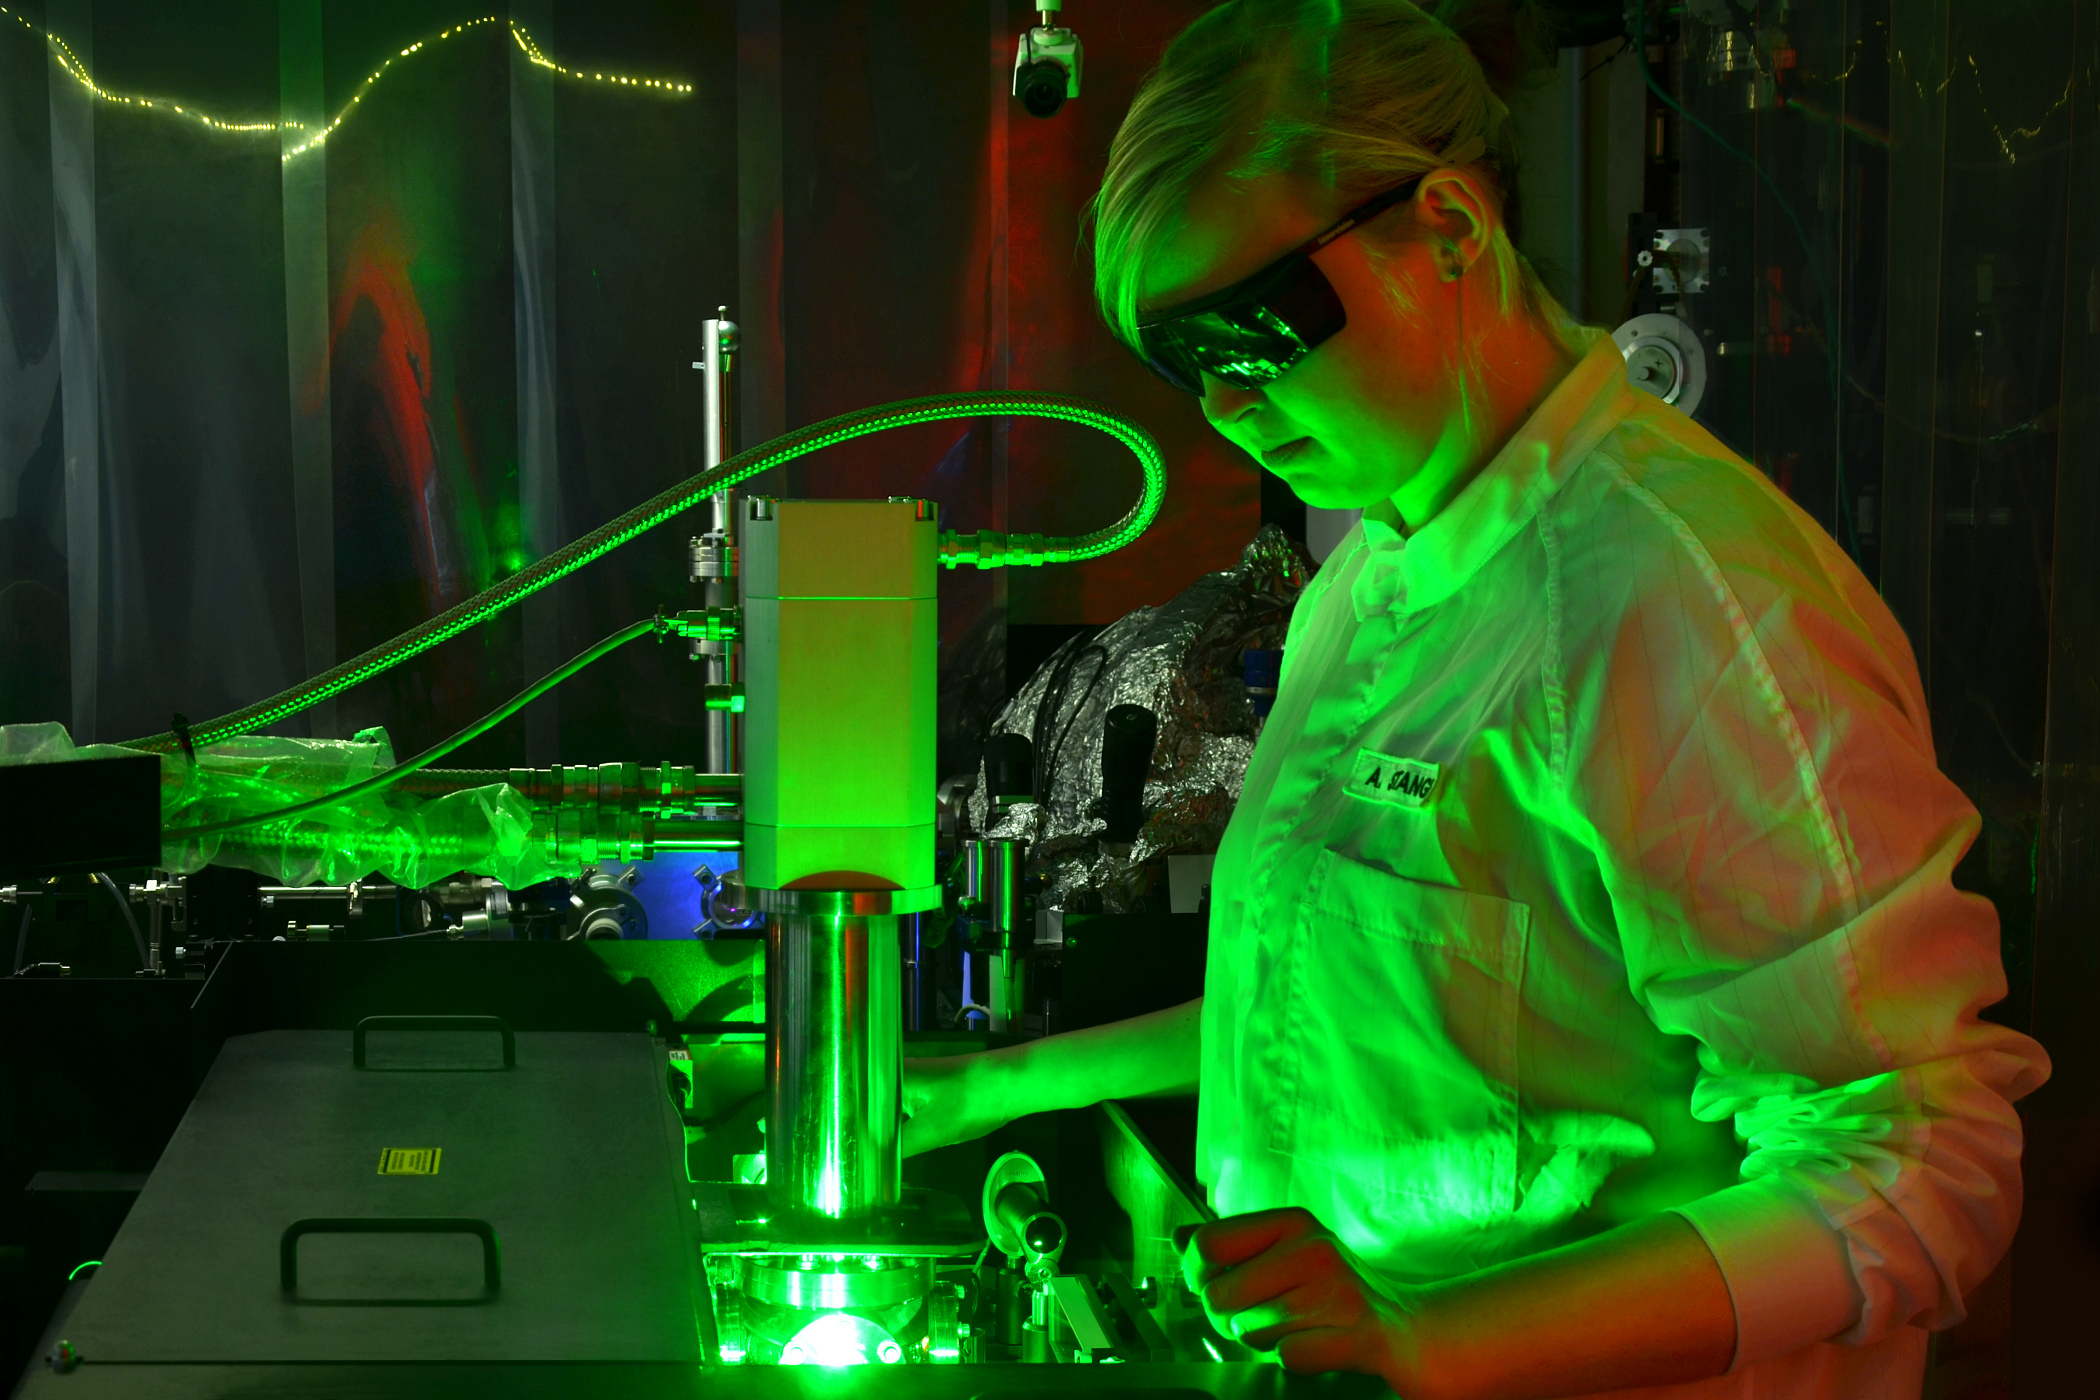 With the ultrafast system in the Physics Centre at the CAU, the behaviour of electrons can be filmed live.